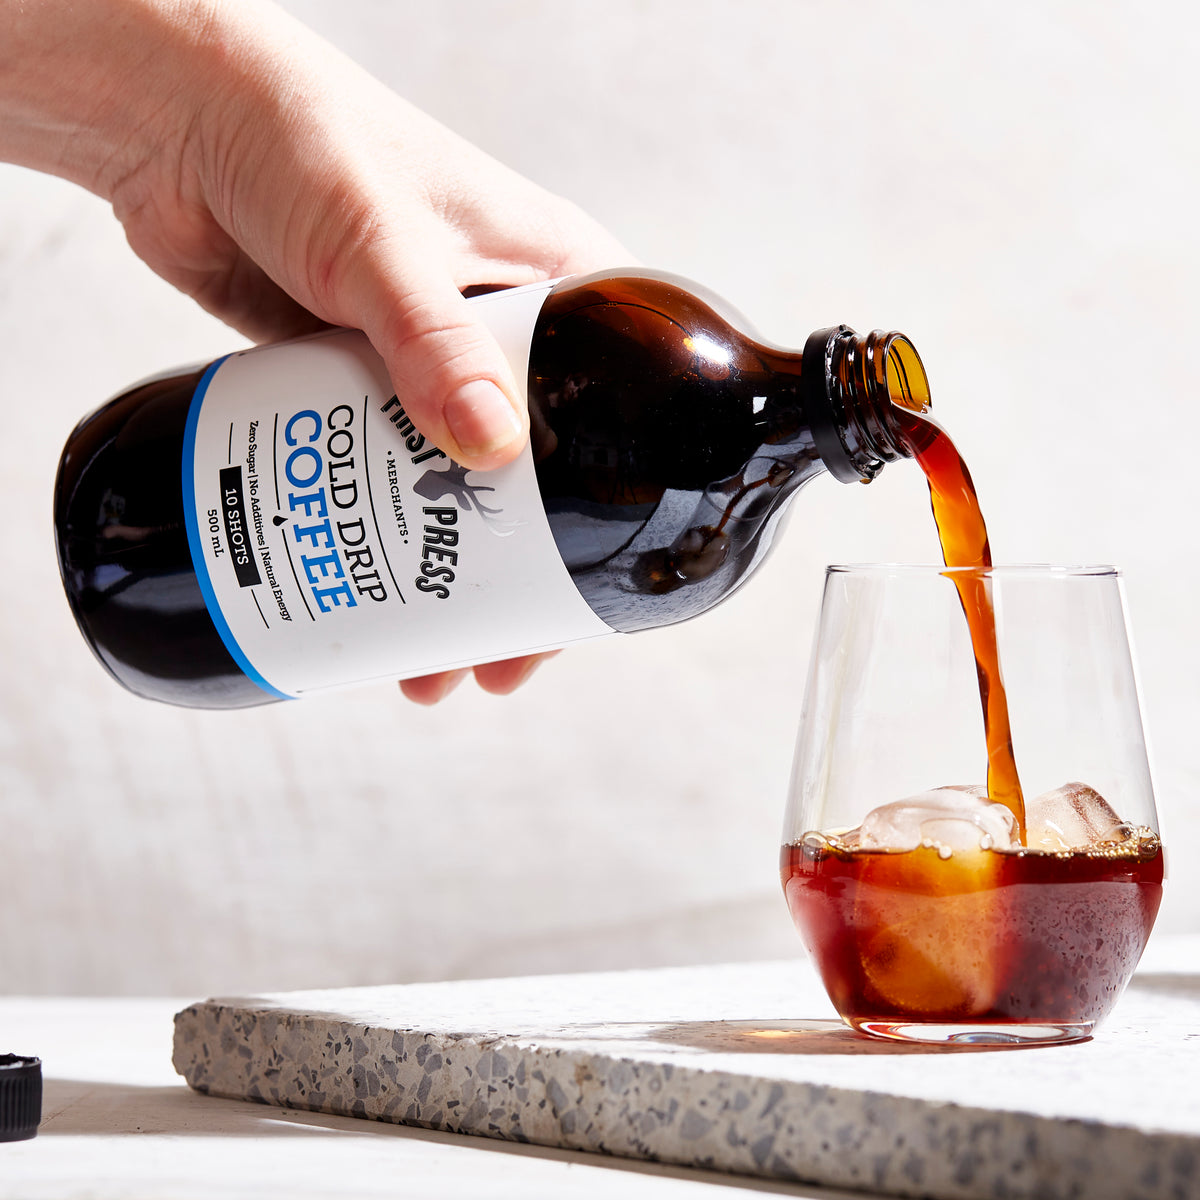 Big Boy 500ml Original Cold Drip | First Press Cold Drip Coffee | Melbourne Made